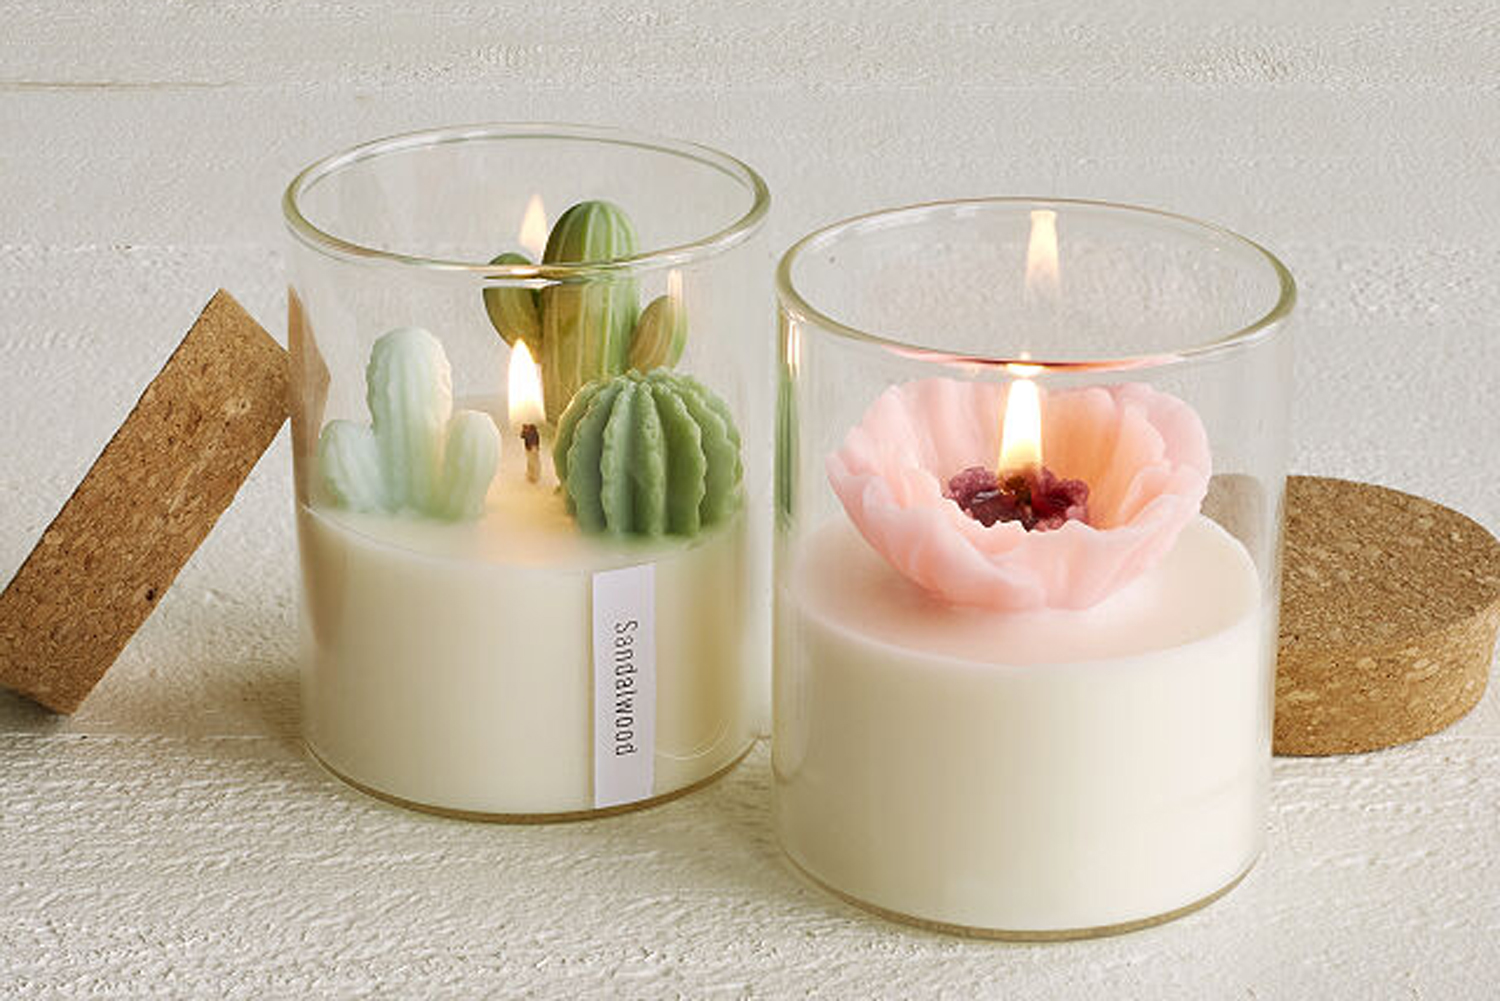 Listen Up Plant Ladies: Succulent Candles Are The Newest Trend Taking Over